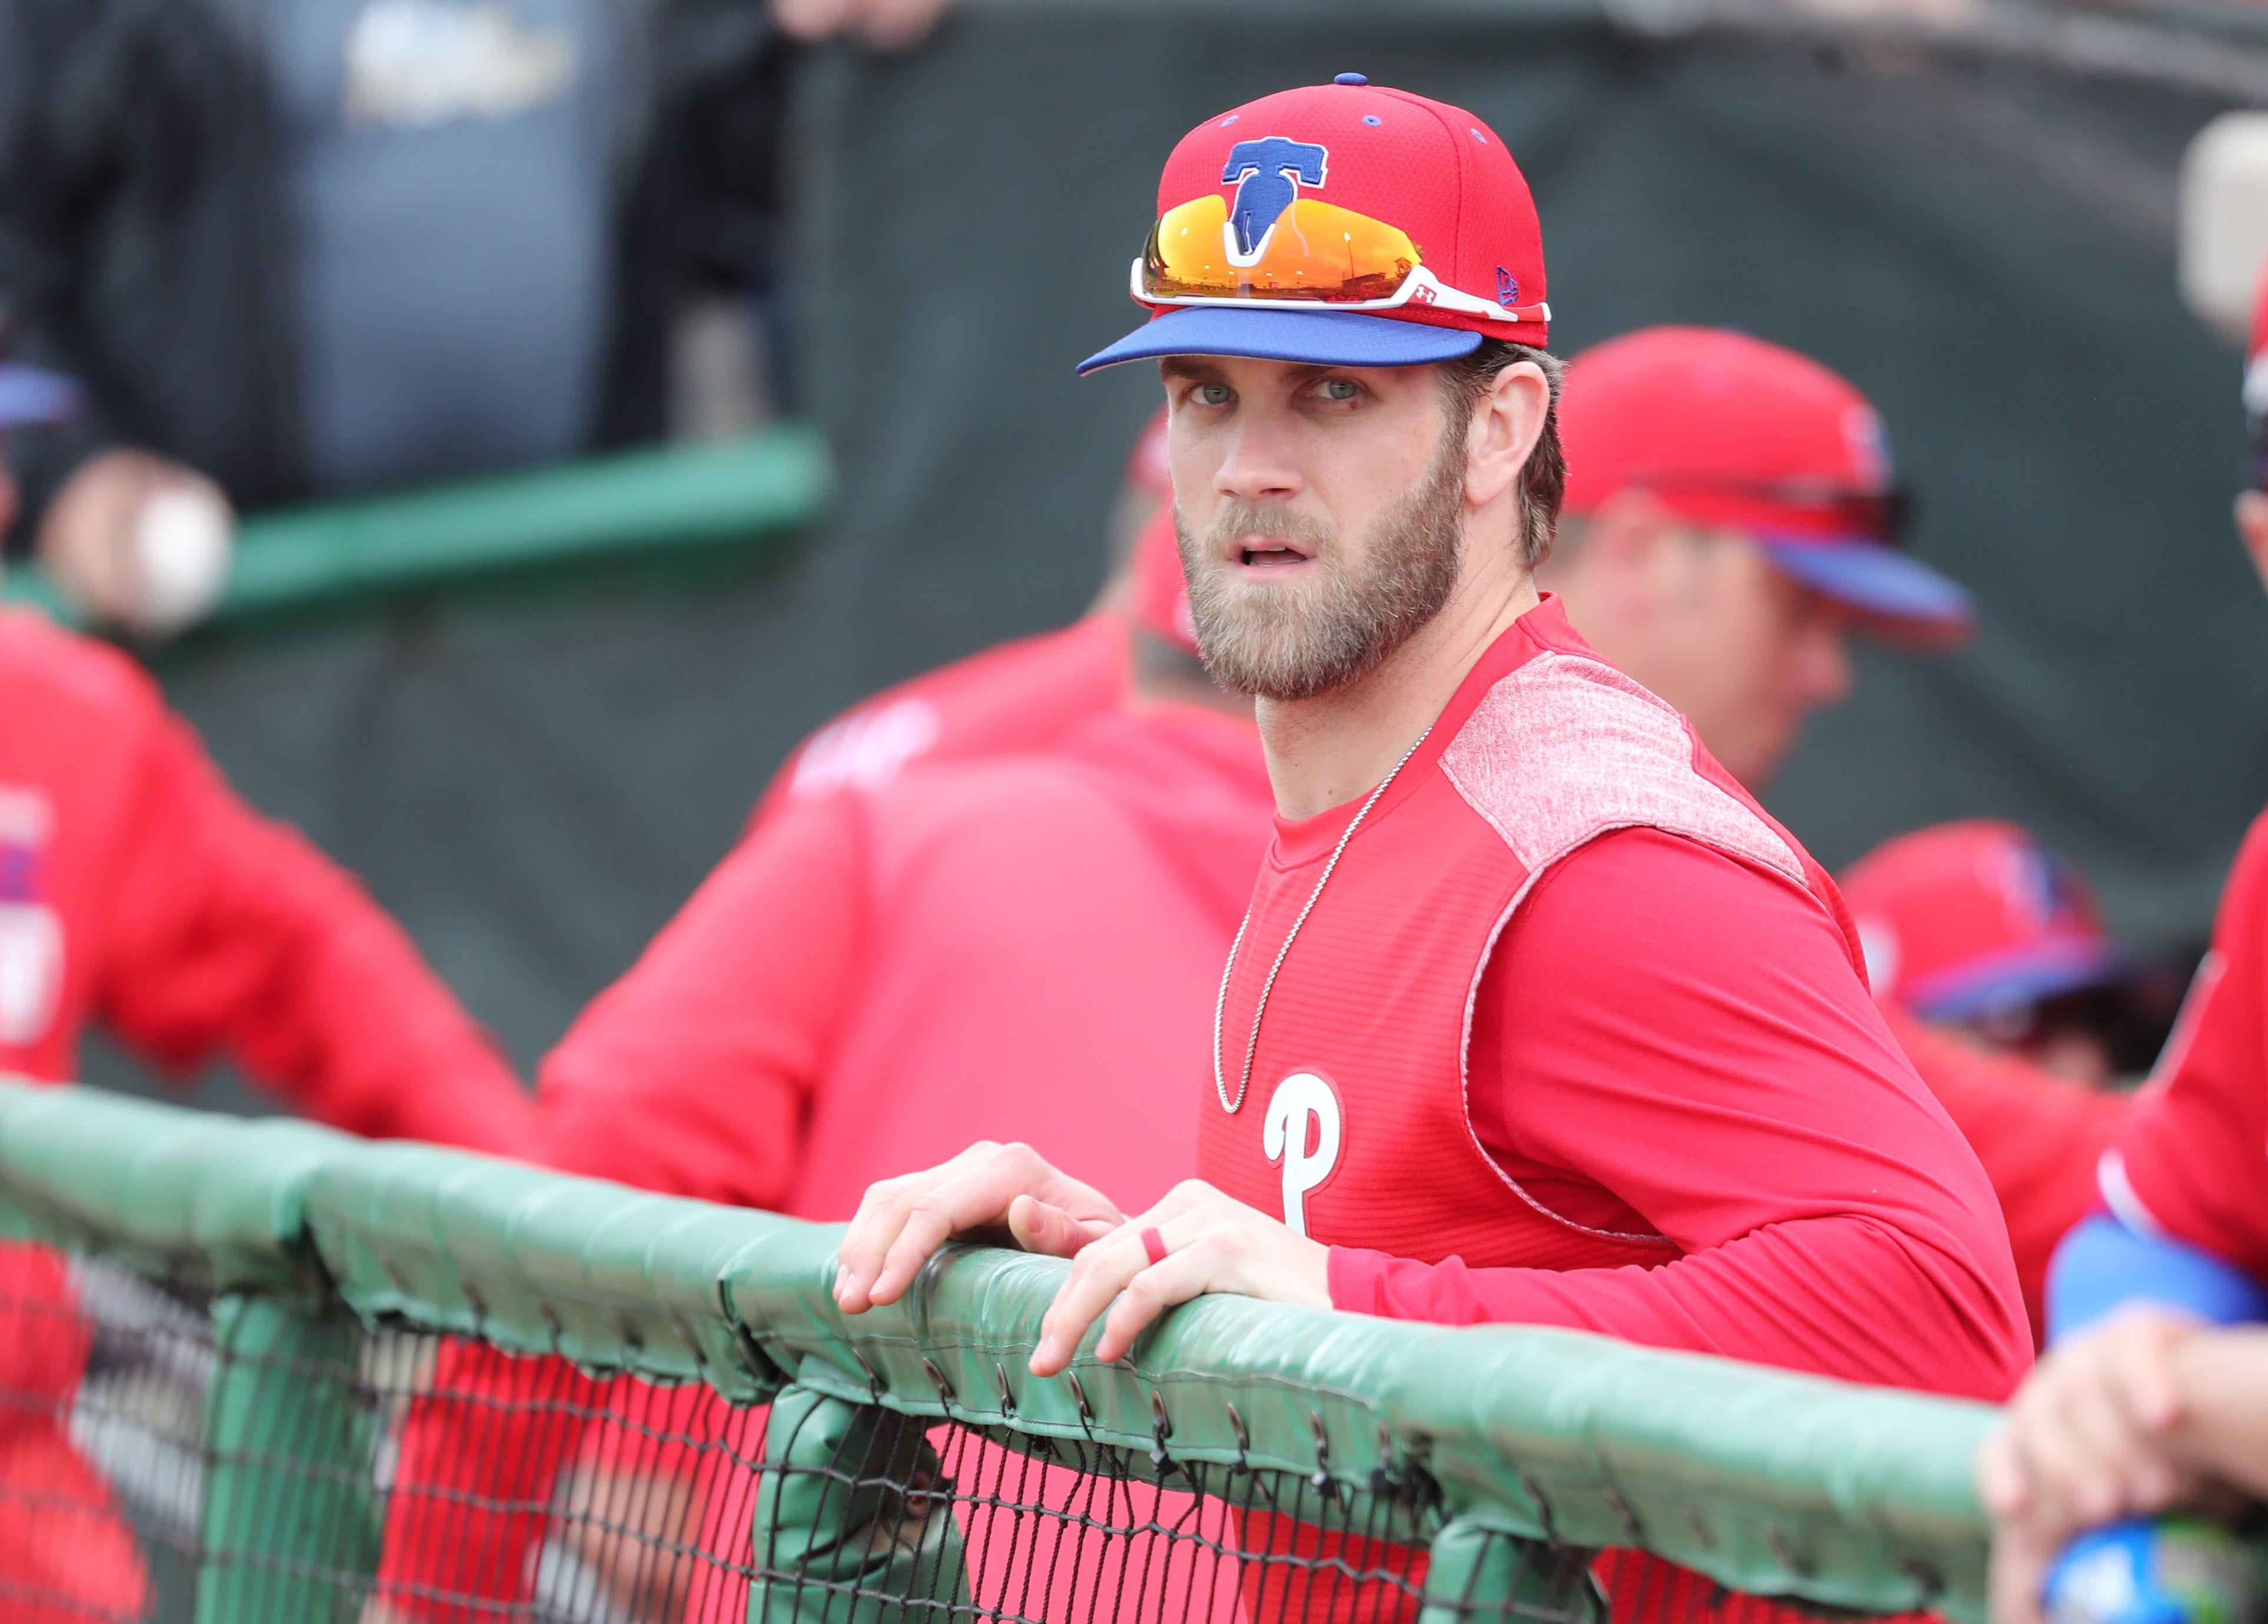 It's easier to get used to seeing Bryce Harper in a new uniform when it's the same colors as his old uniform.